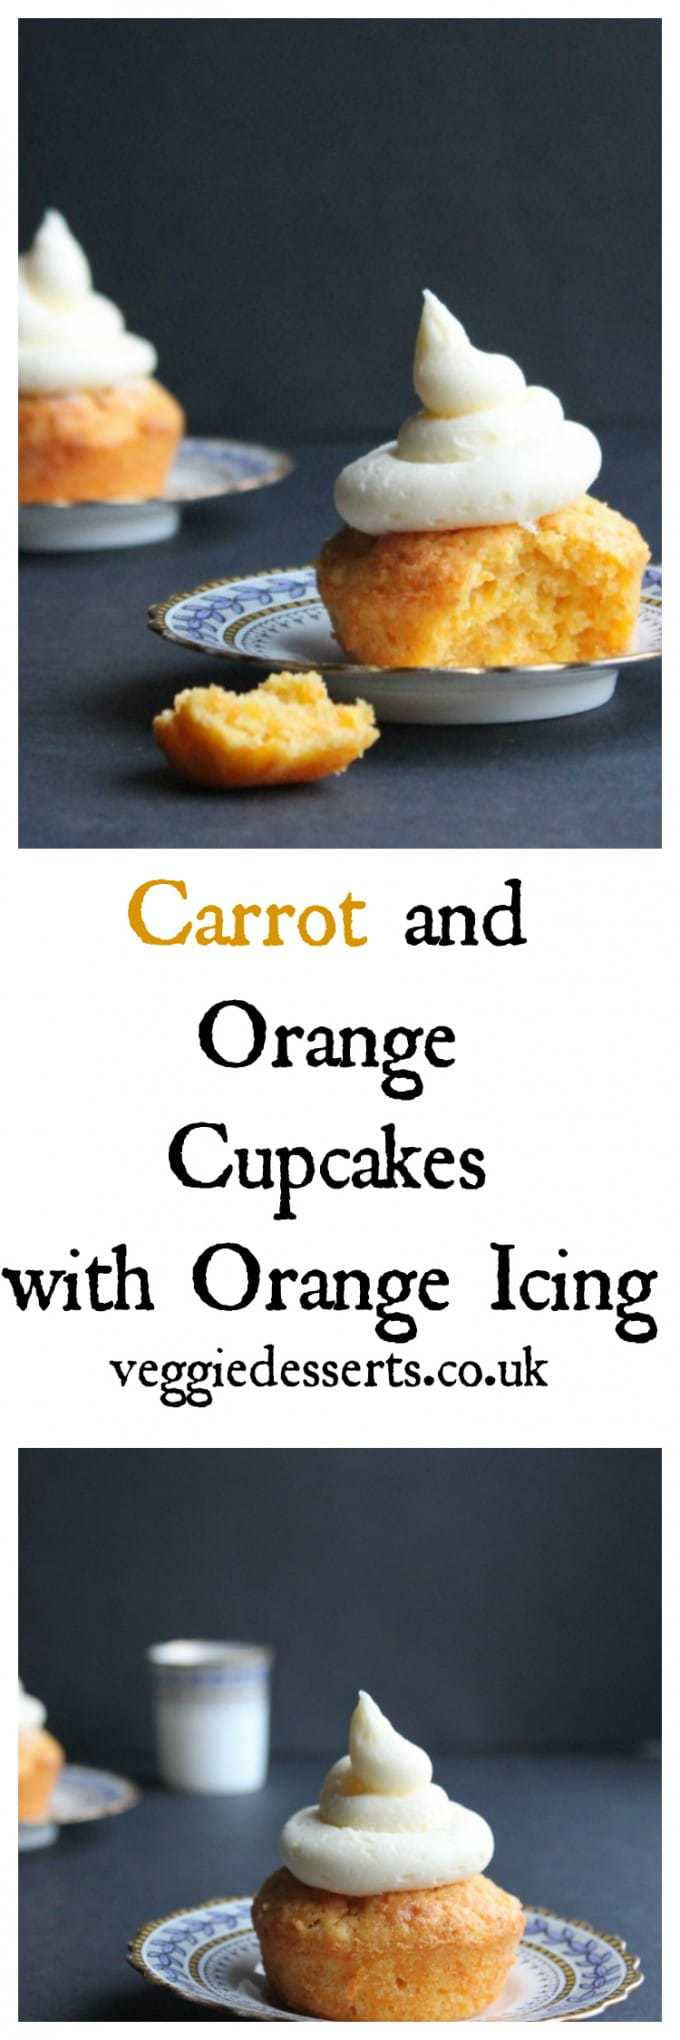 Carrot orange cupcakes are a completely different take on carrot cake. Instead of heavy wintery spices, I've flavoured the carrot sponge with vibrant orange. They taste light and vibrant. #carrotcake #carrotcupcakes #vegetabledesserts #vegetablecake